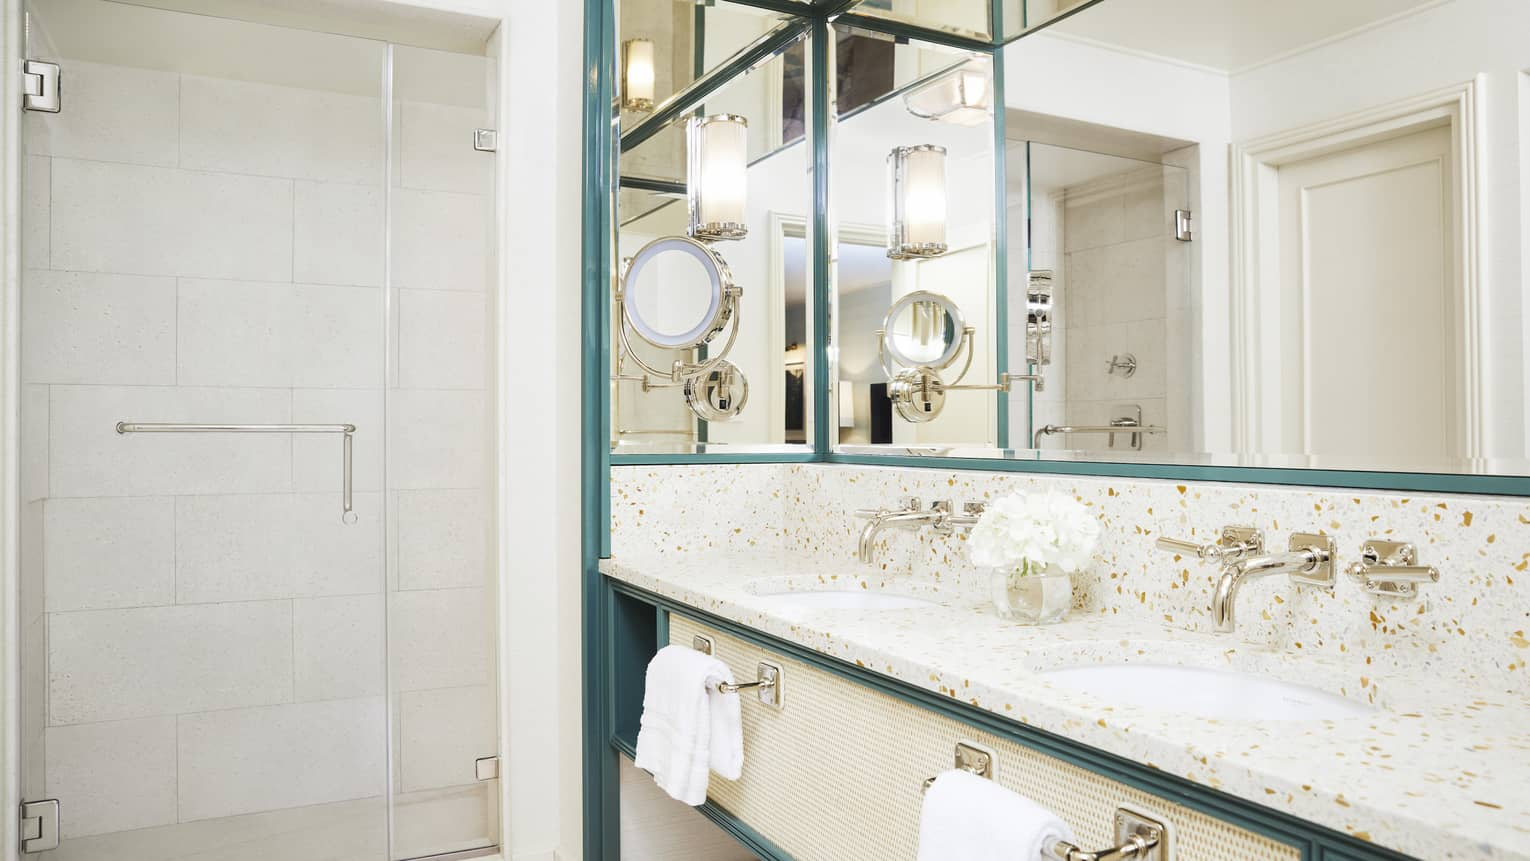 A bright bathroom has metal accents and marble countertops